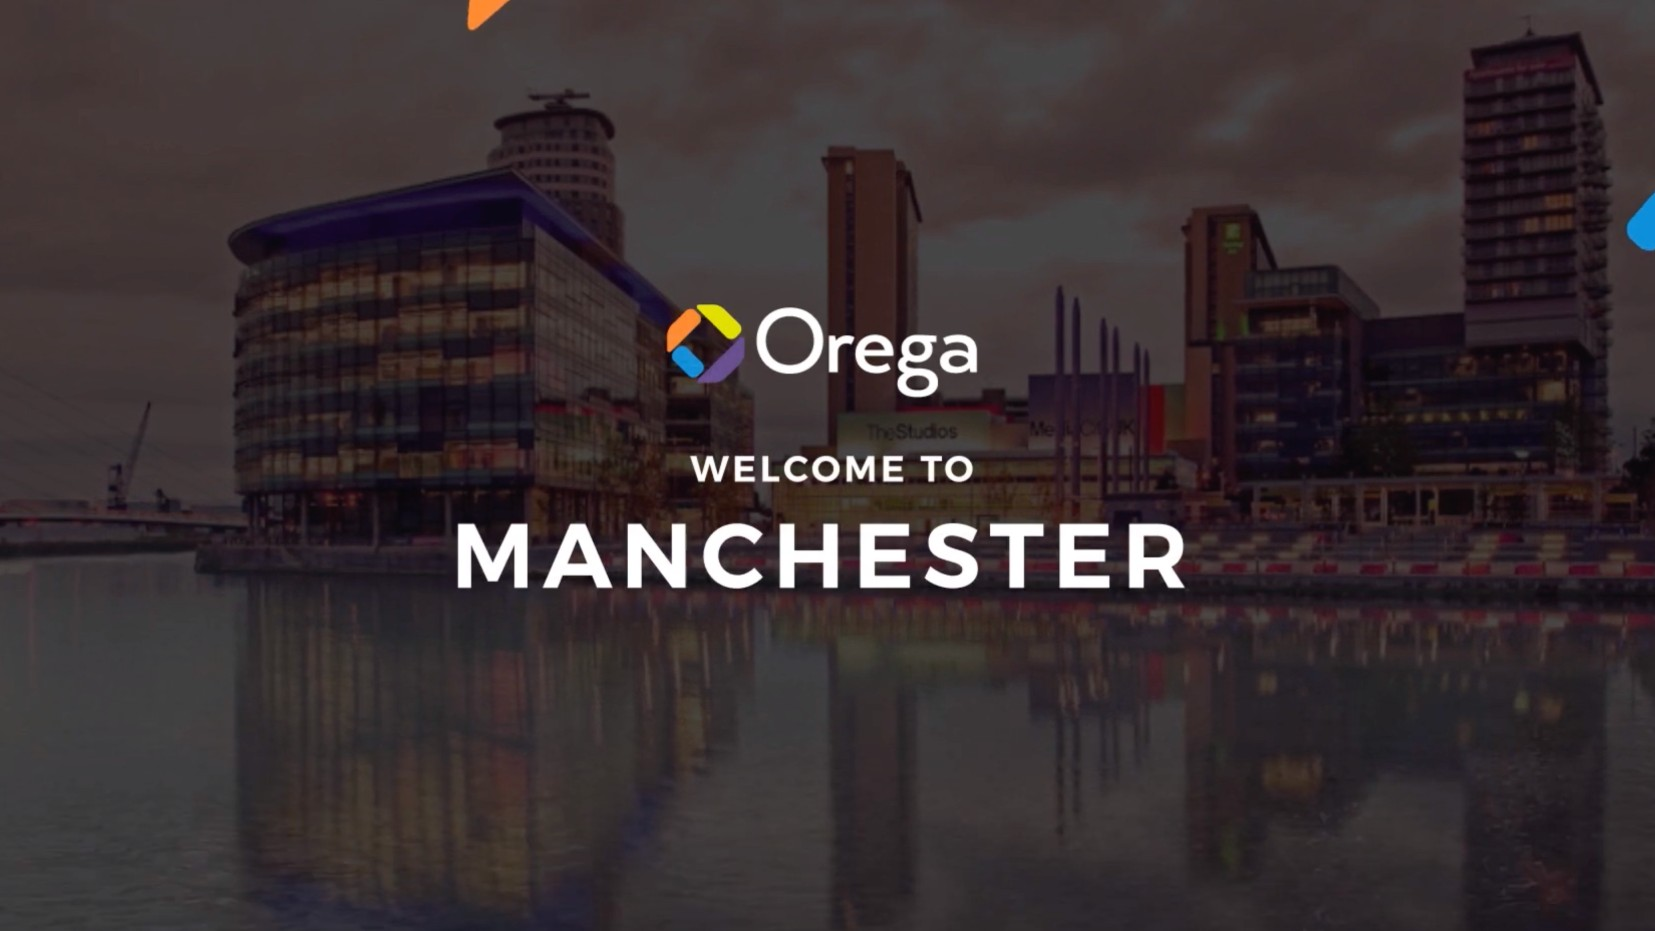 Welcome to Orega Manchester - Resources